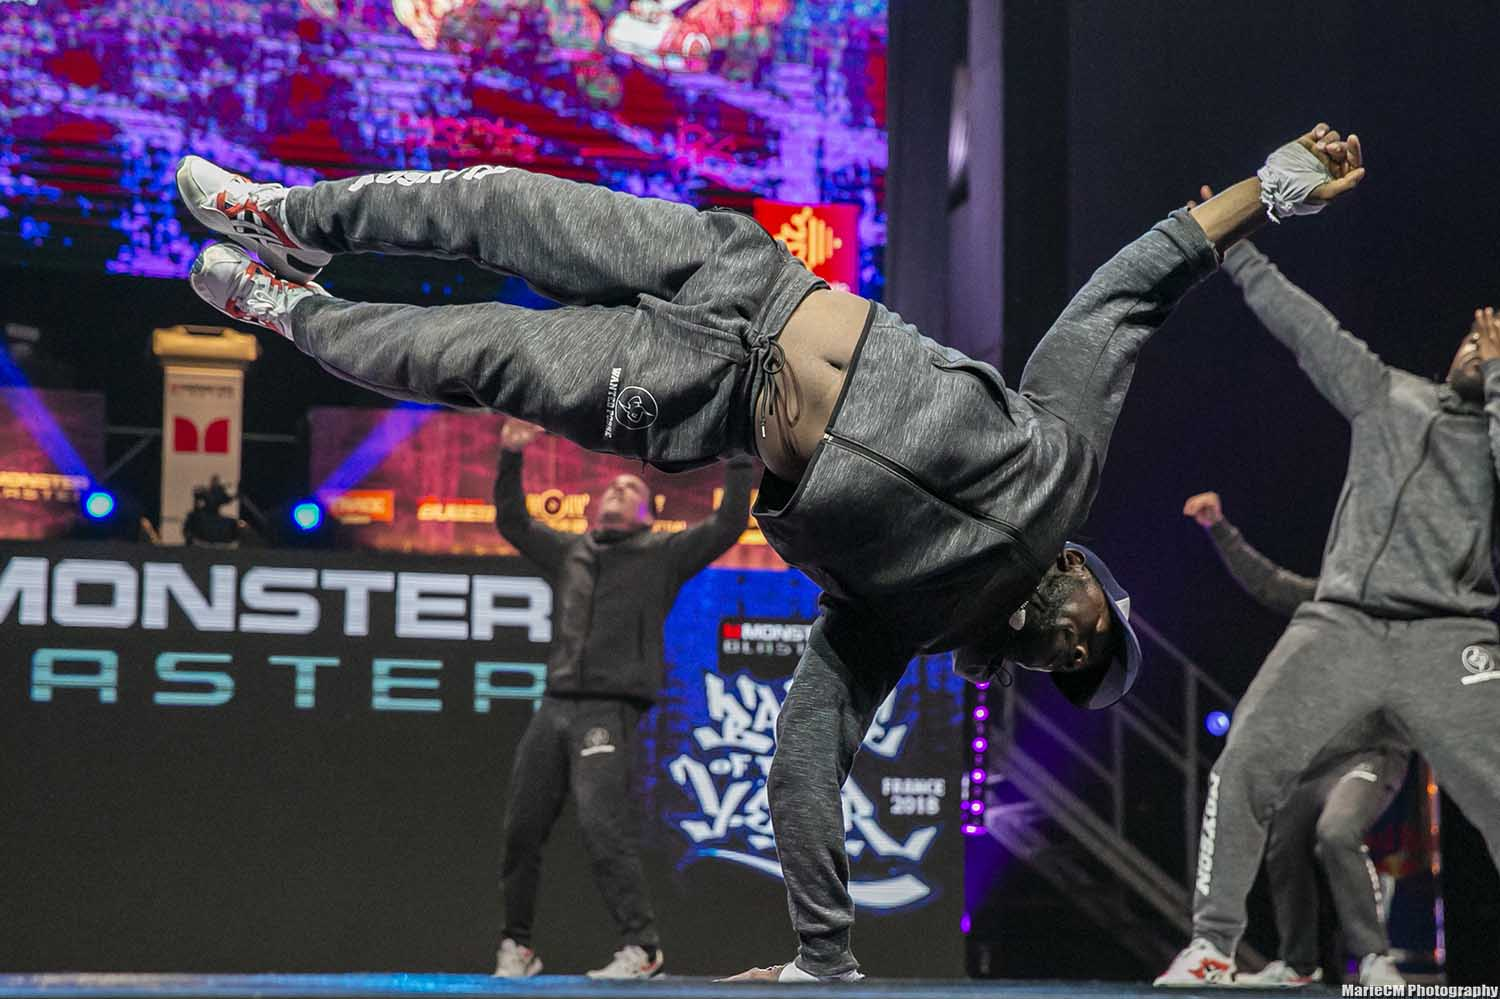 Battle Of The Year 2018 – Crew Wanted Posse